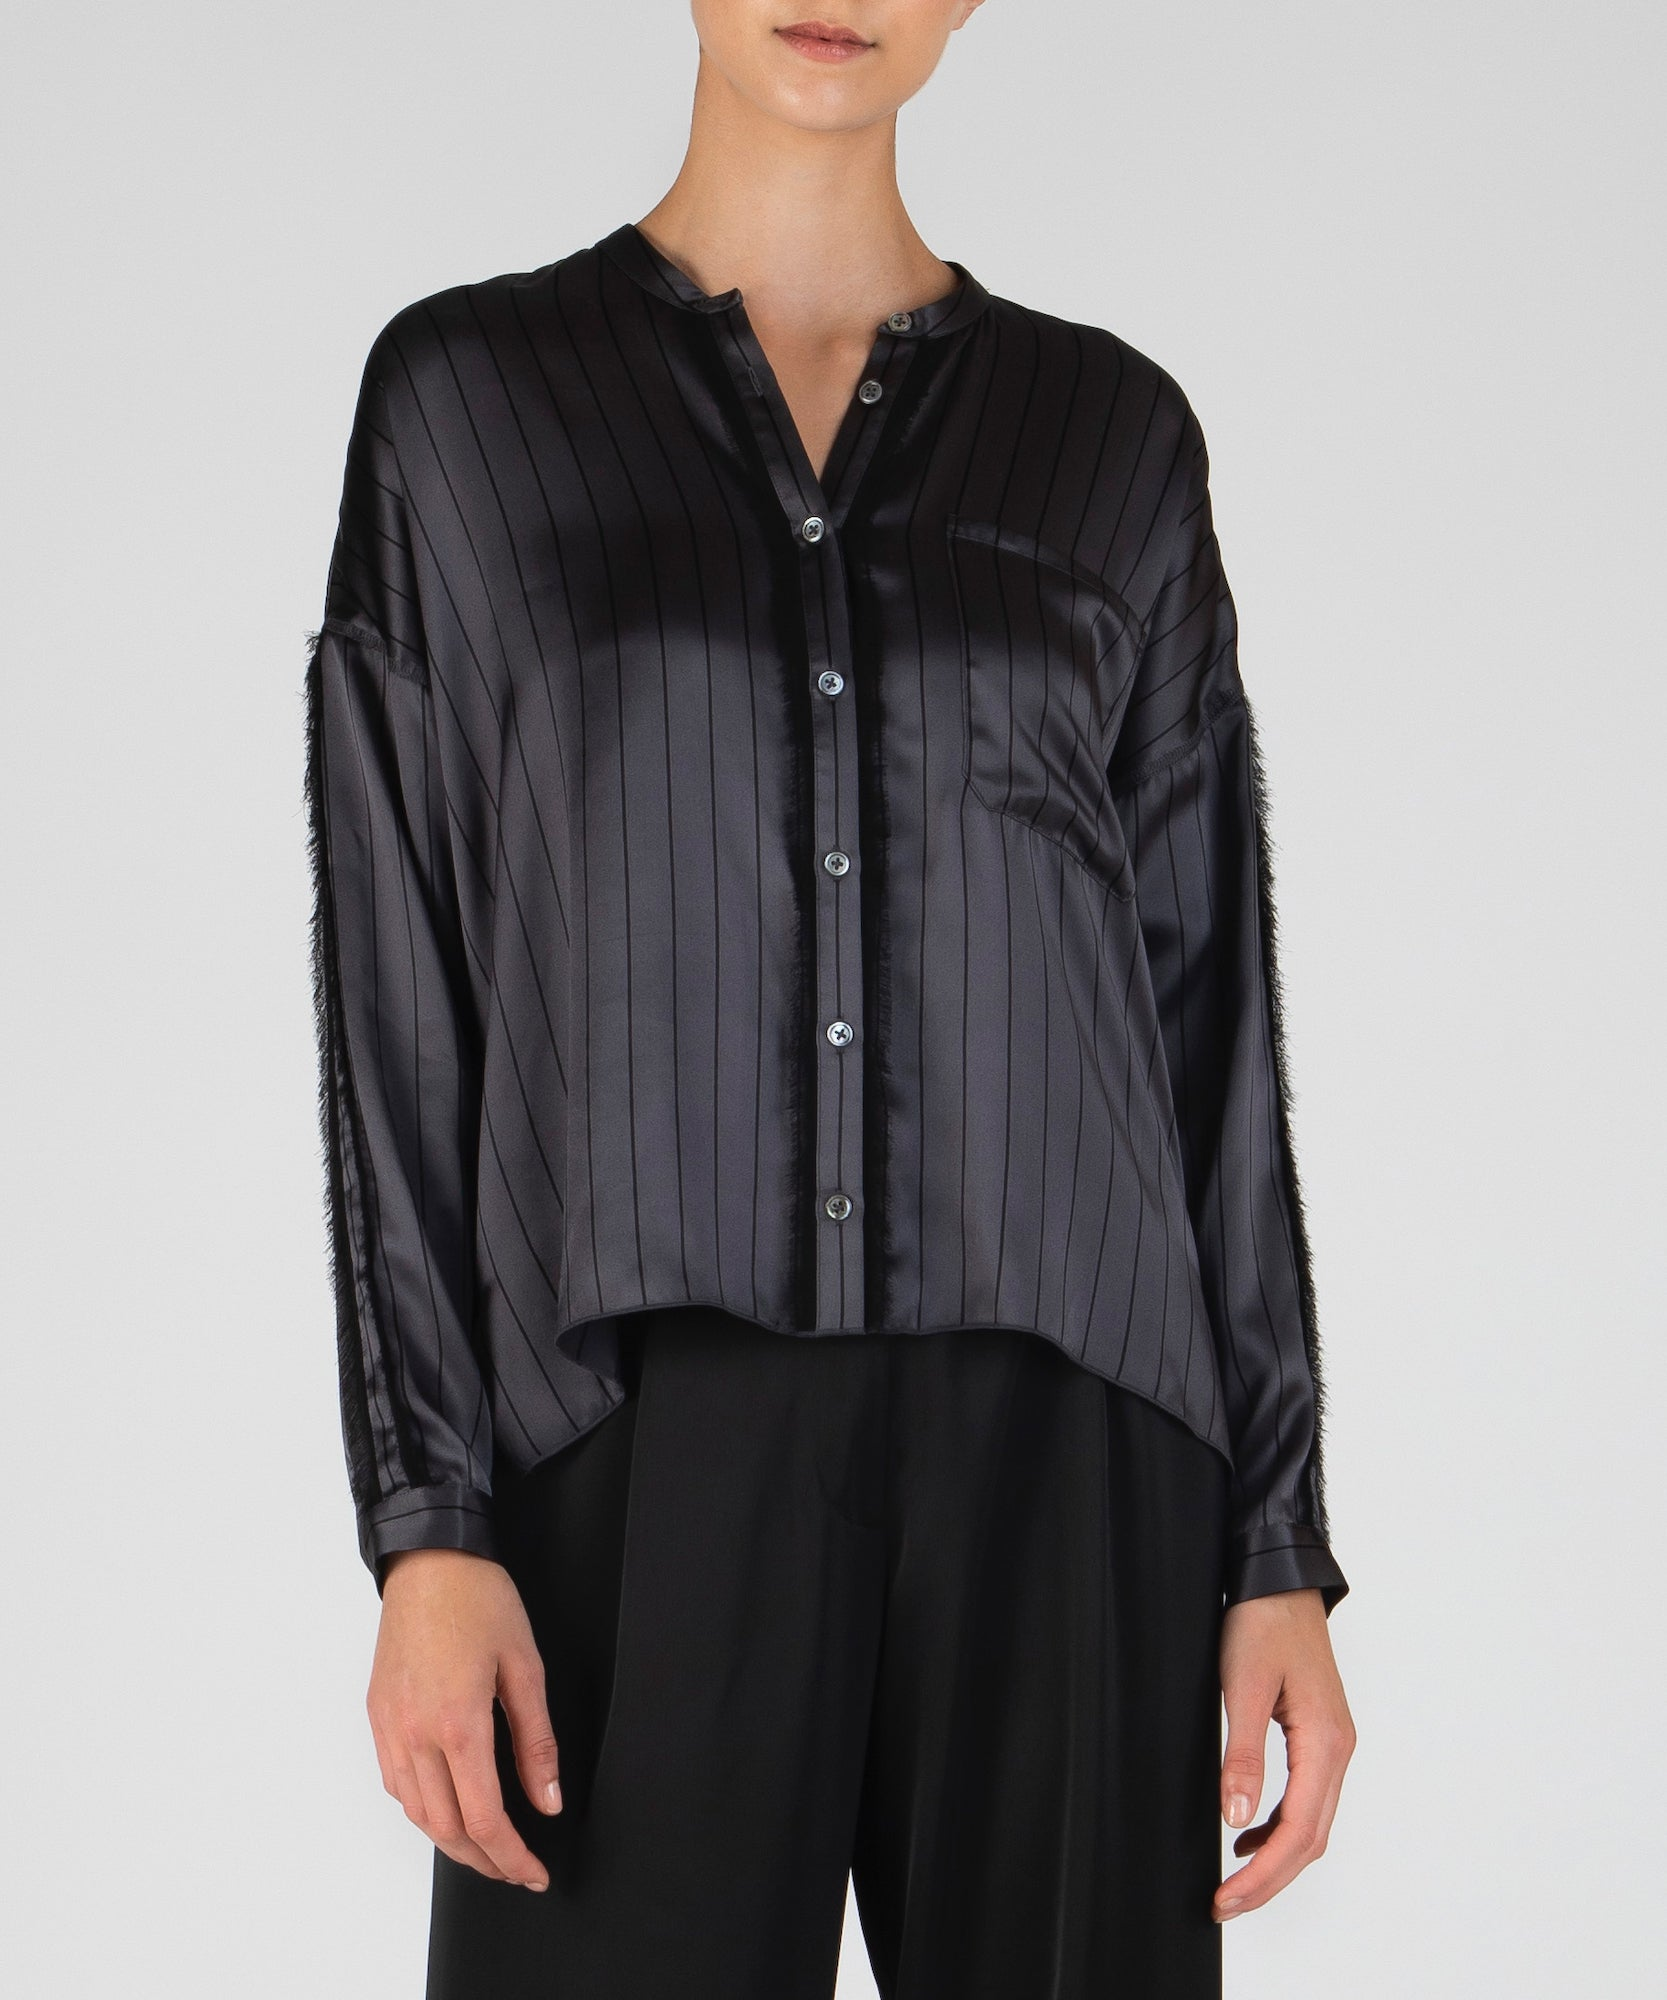 Asphalt and Black Striped Silk Shirt - Women's Blouse by ATM Anthony Thomas Melillo